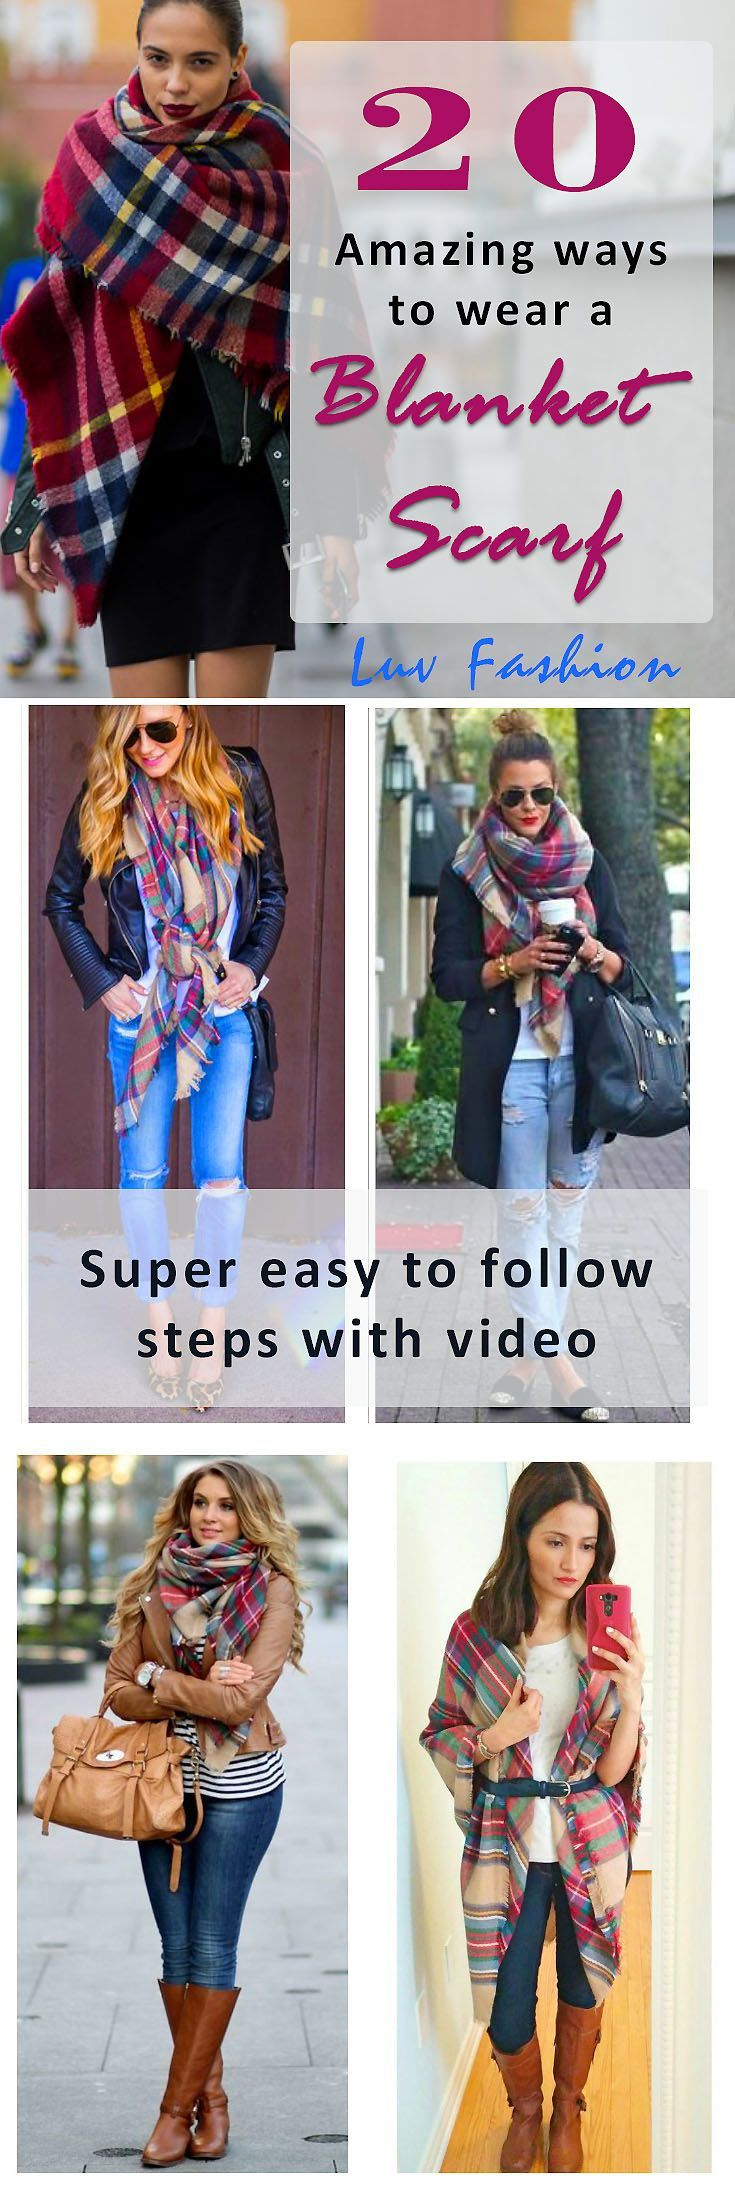 20 SUPER easy ways to wear a blanket scarf including videos. A blanket scarf can be a handful when you are not used to them - blanket scarf how to wear a rectangular - how to tie a blanket scarf video - blanket scarf tutorial how to wear a #luvfashion #blanketscarf #howtowearscarf #blanketscarves